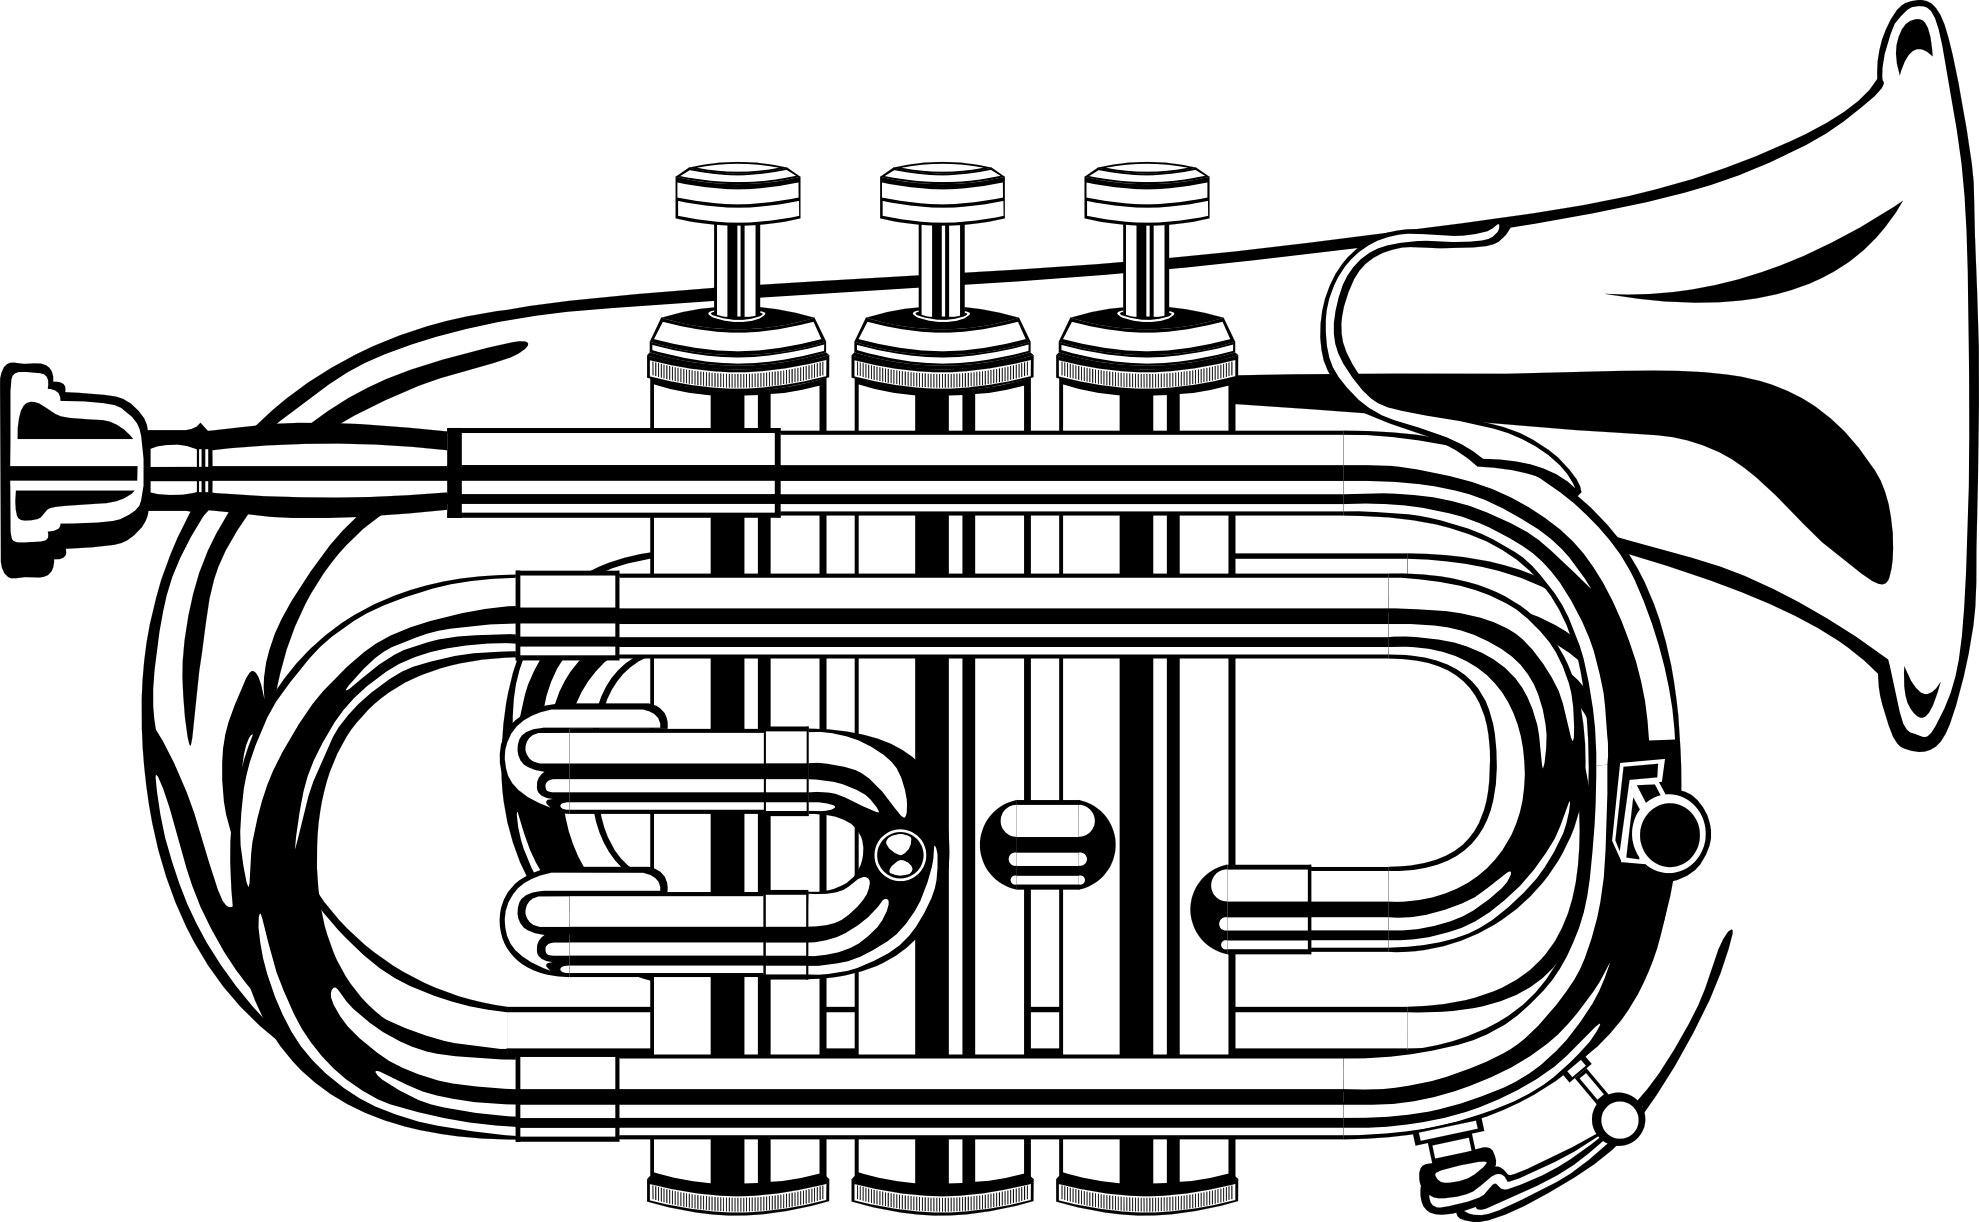 Trumpet black and white clipart graphic free library Trumpet black and white clipart kid - Cliparting.com graphic free library